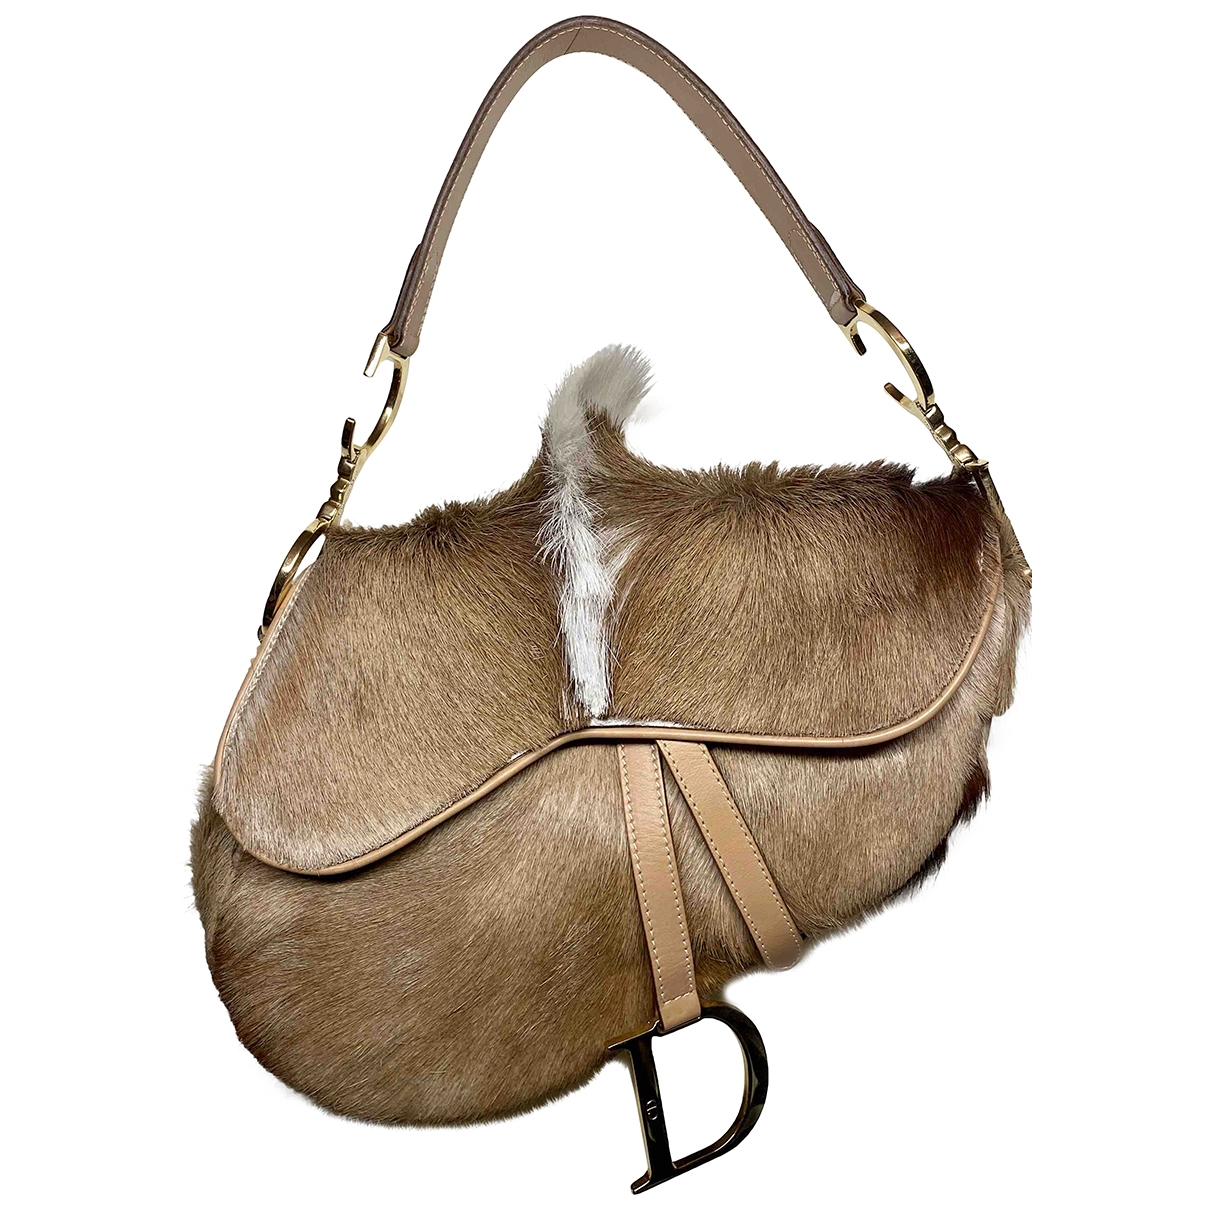 Dior Saddle Beige Pony-style calfskin handbag for Women \N